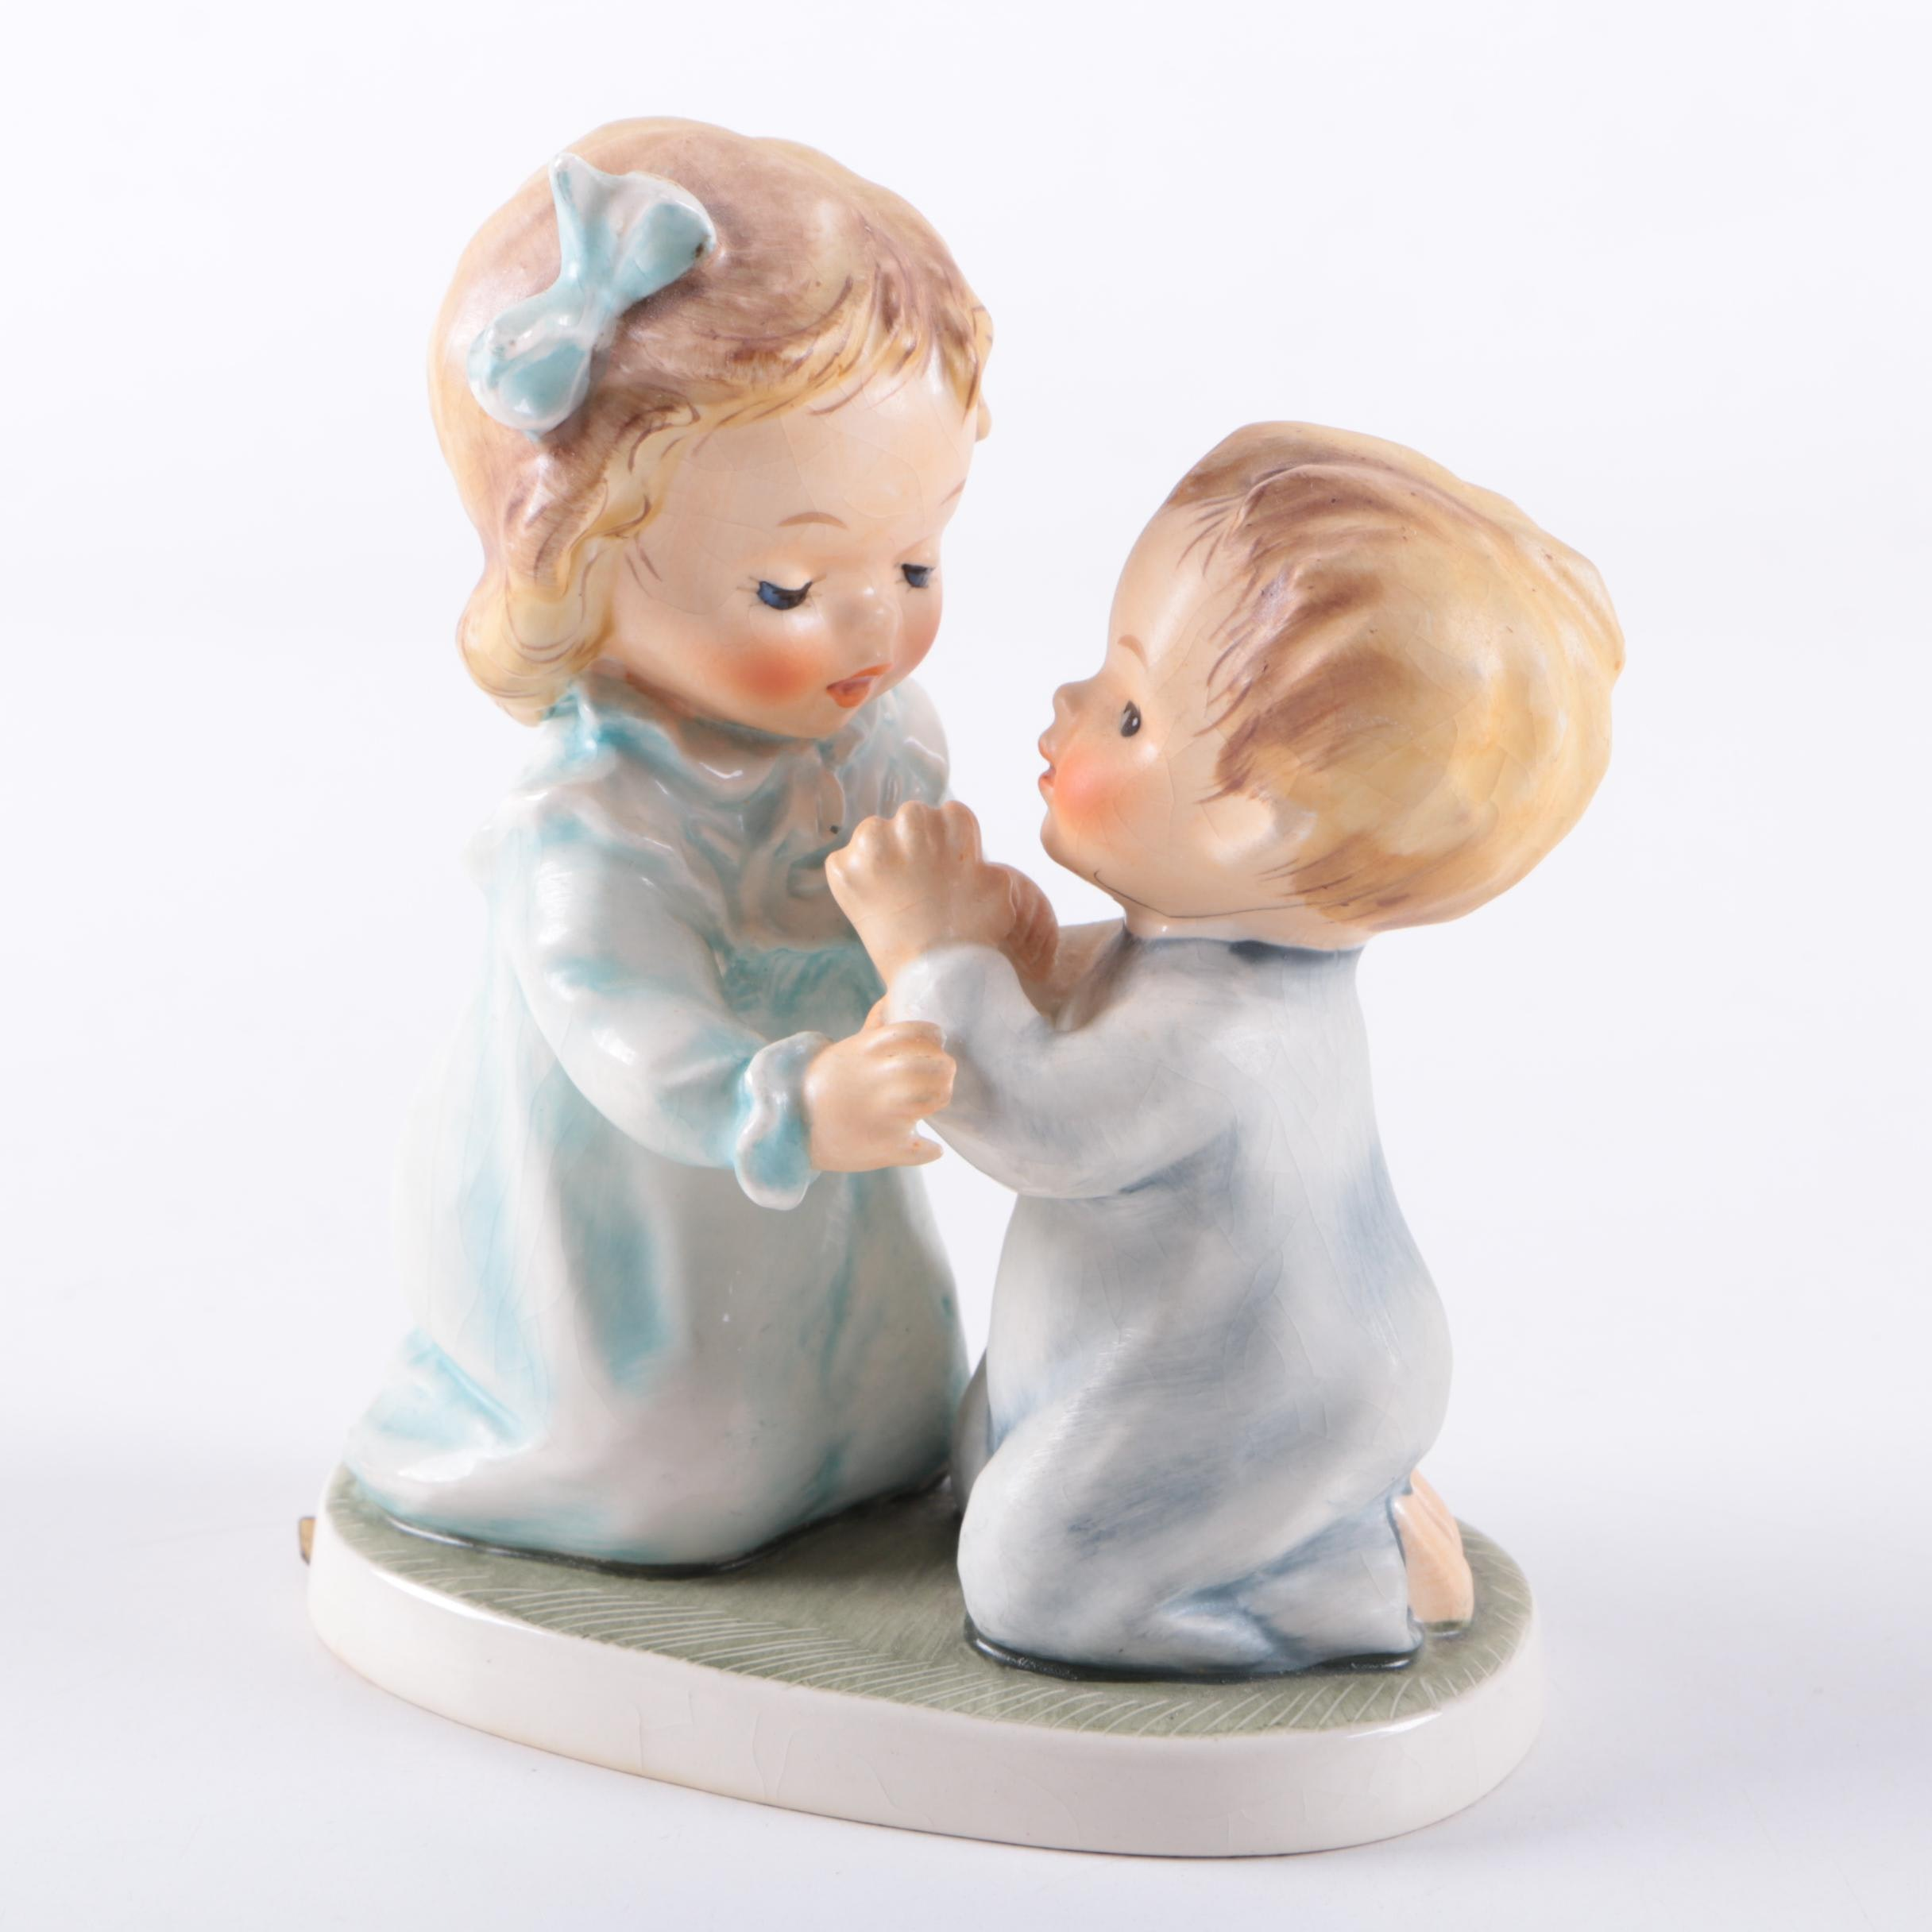 "Goebel Porcelain Figurine ""The Way to Pray"" by Charlot Byj"